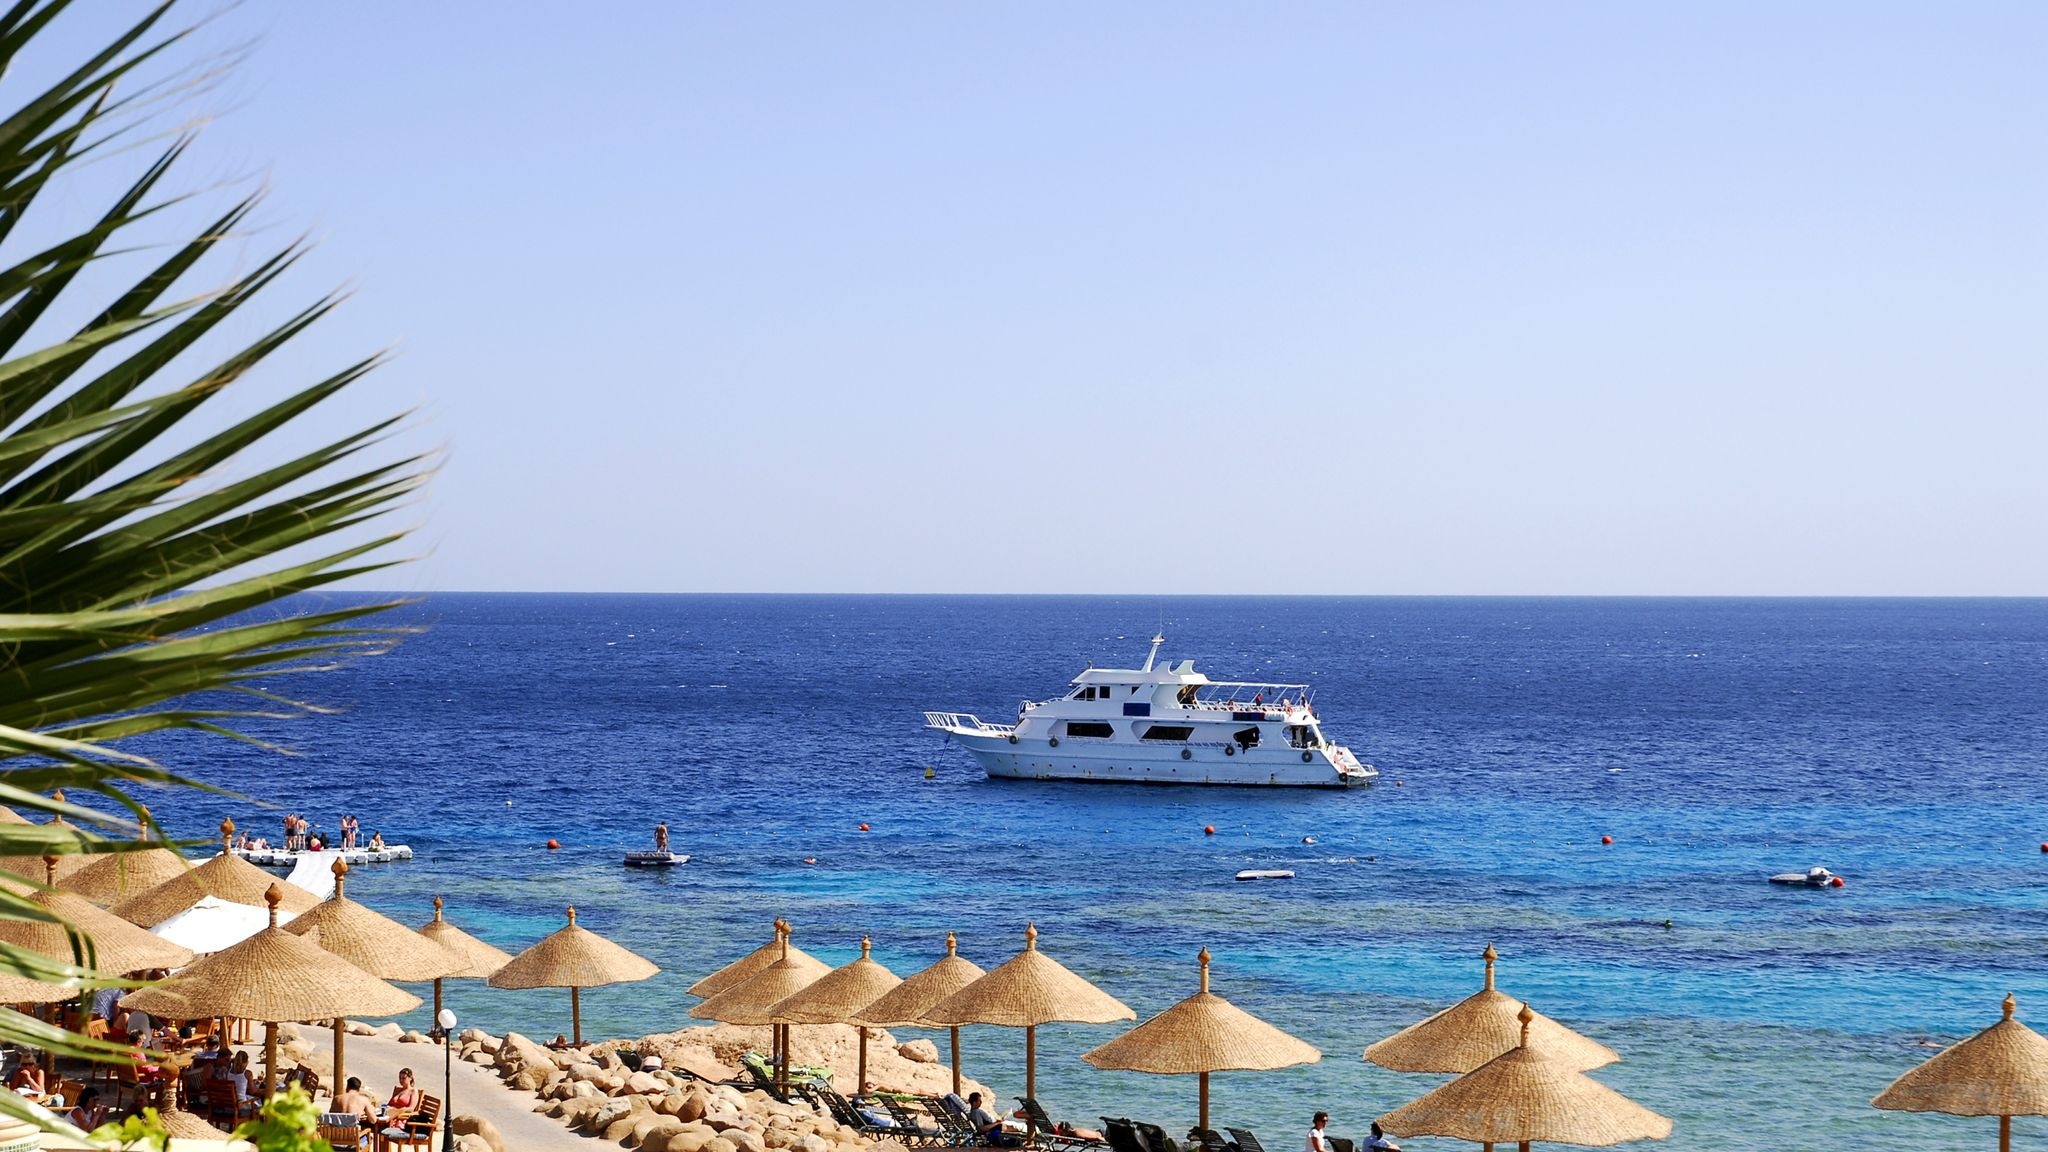 Ban on direct UK flights to Sharm el Sheikh lifted